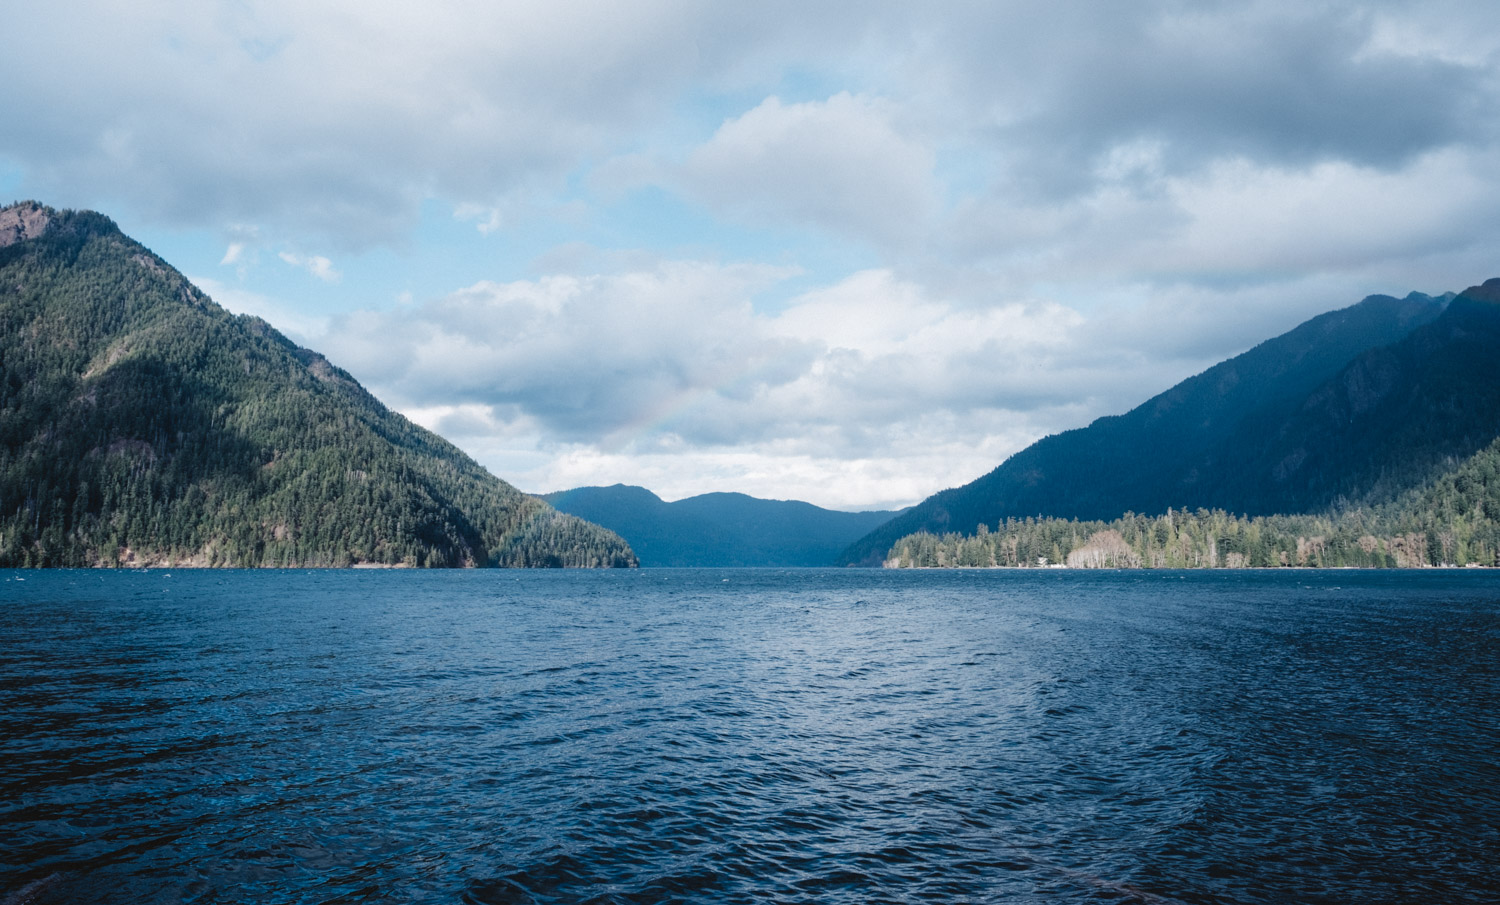 Lake Crescent - Lying 18 miles west of Port Angeles and nestled between the foothills of the Olympic Mountains, Lake Crescent draws visitors with its pristine waters and various campgrounds and hiking trails. Check out the Mt. Storm King ranger station, have a picnic and take a dip in the lake, or hike to the gorgeous Marymere Falls. (Image: Ryan McBoyle / Seattle Refined)